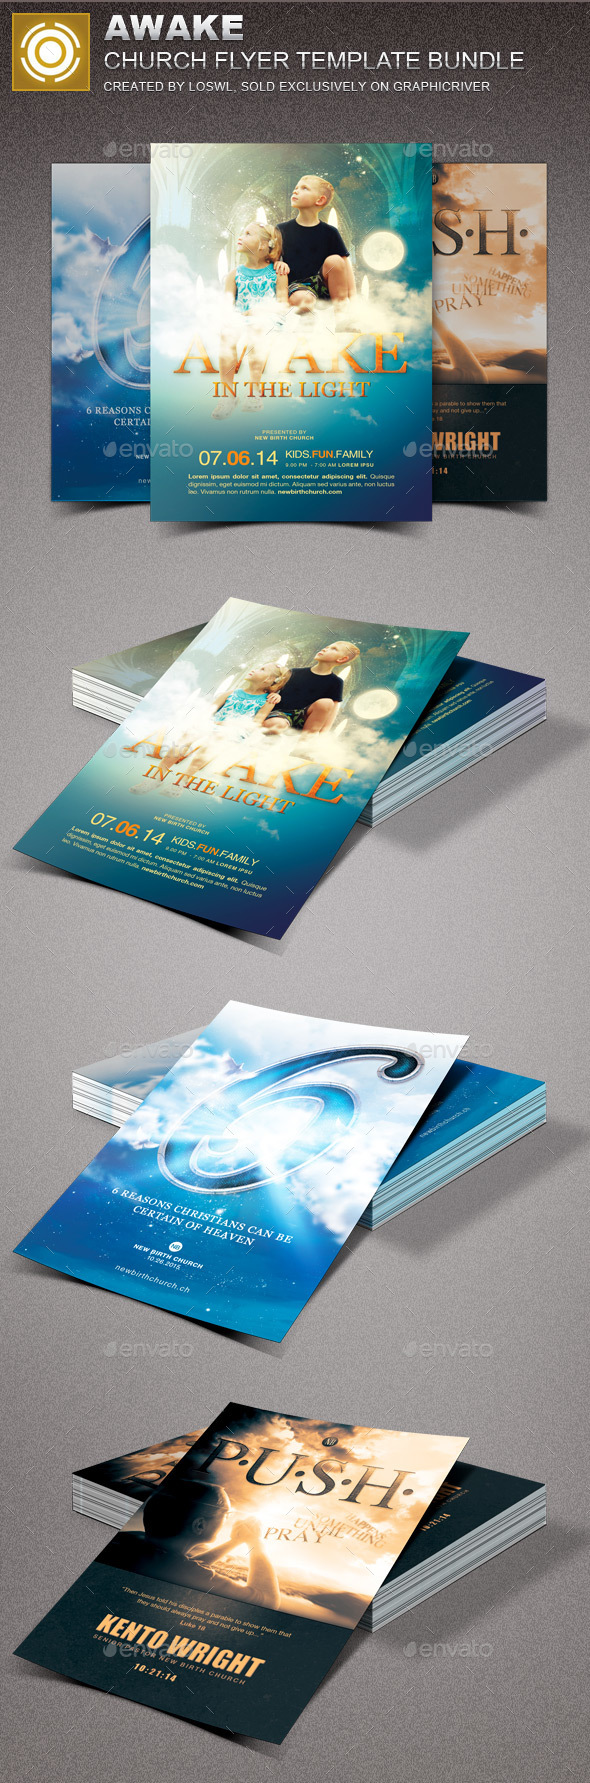 Awake Church Marketing Flyer Bundle - Church Flyers